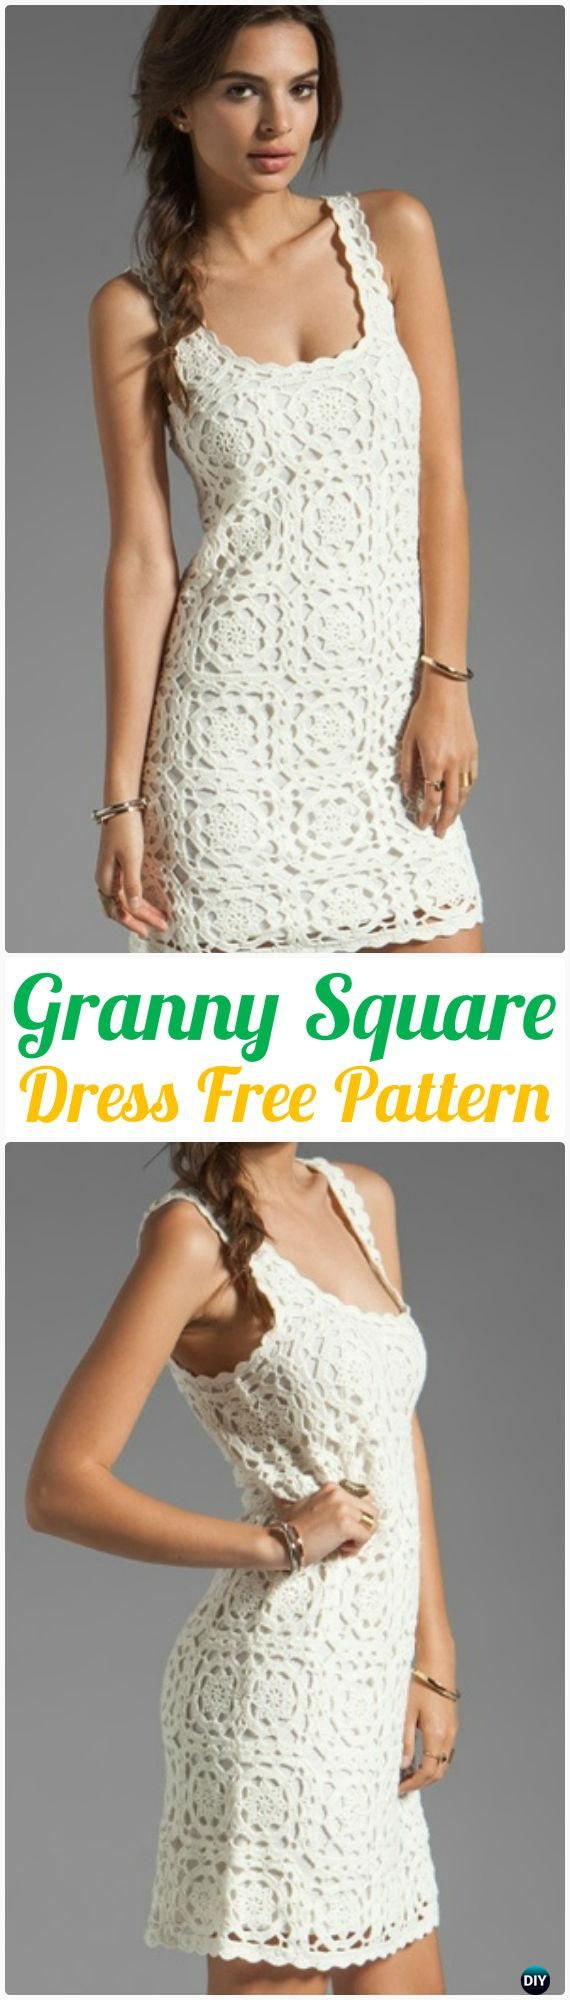 Crochet Granny Square Dress Patterns : 25+ best ideas about Crochet clothes on Pinterest ...